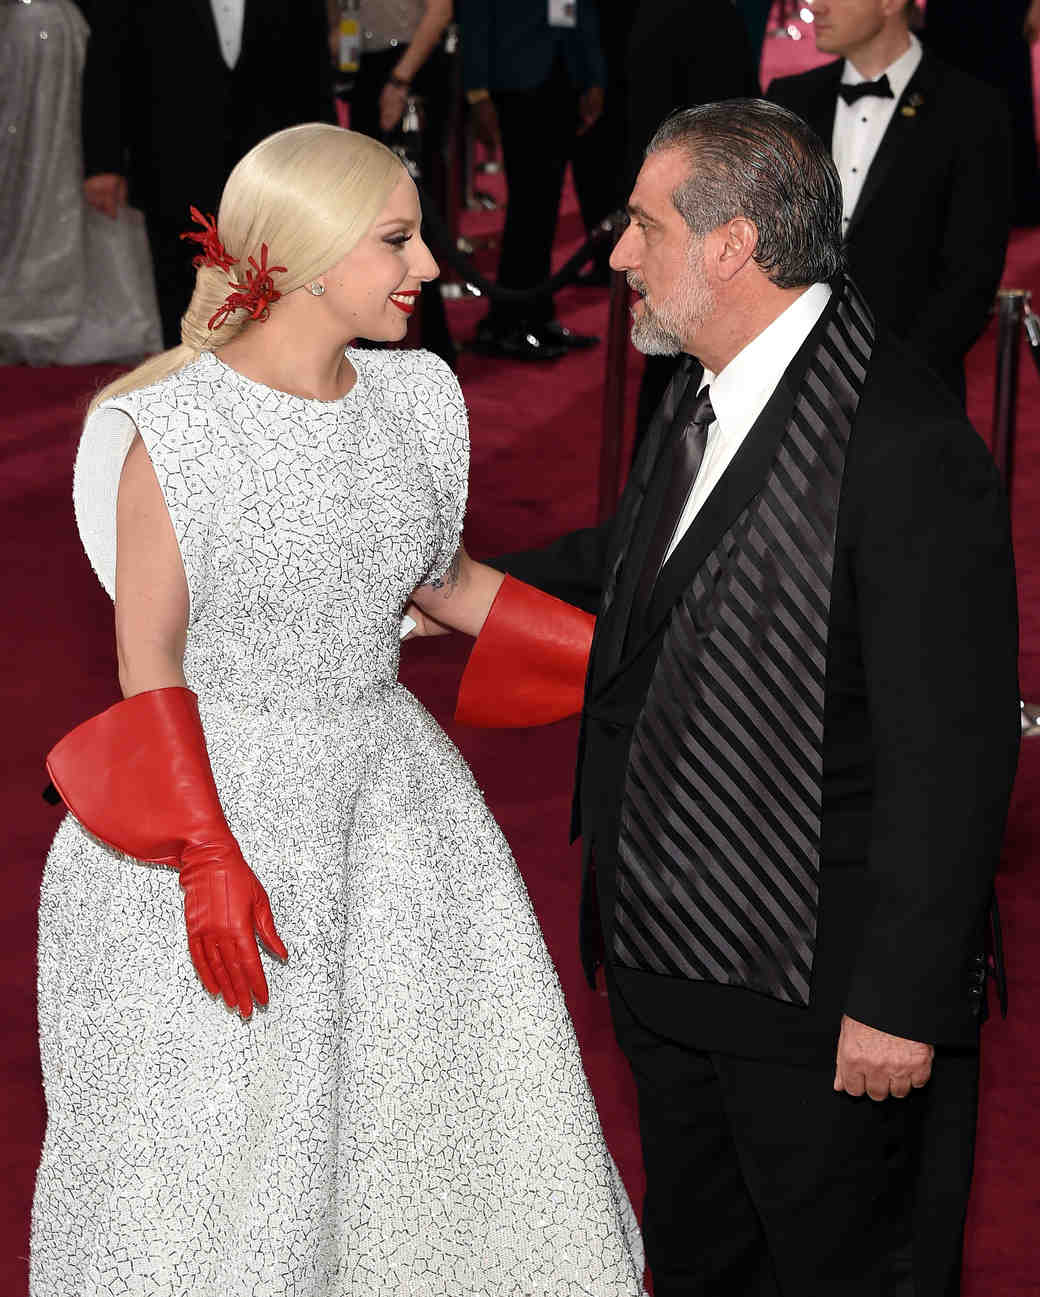 marry-me-martha-lady-gaga-with-dad-0715.jpg